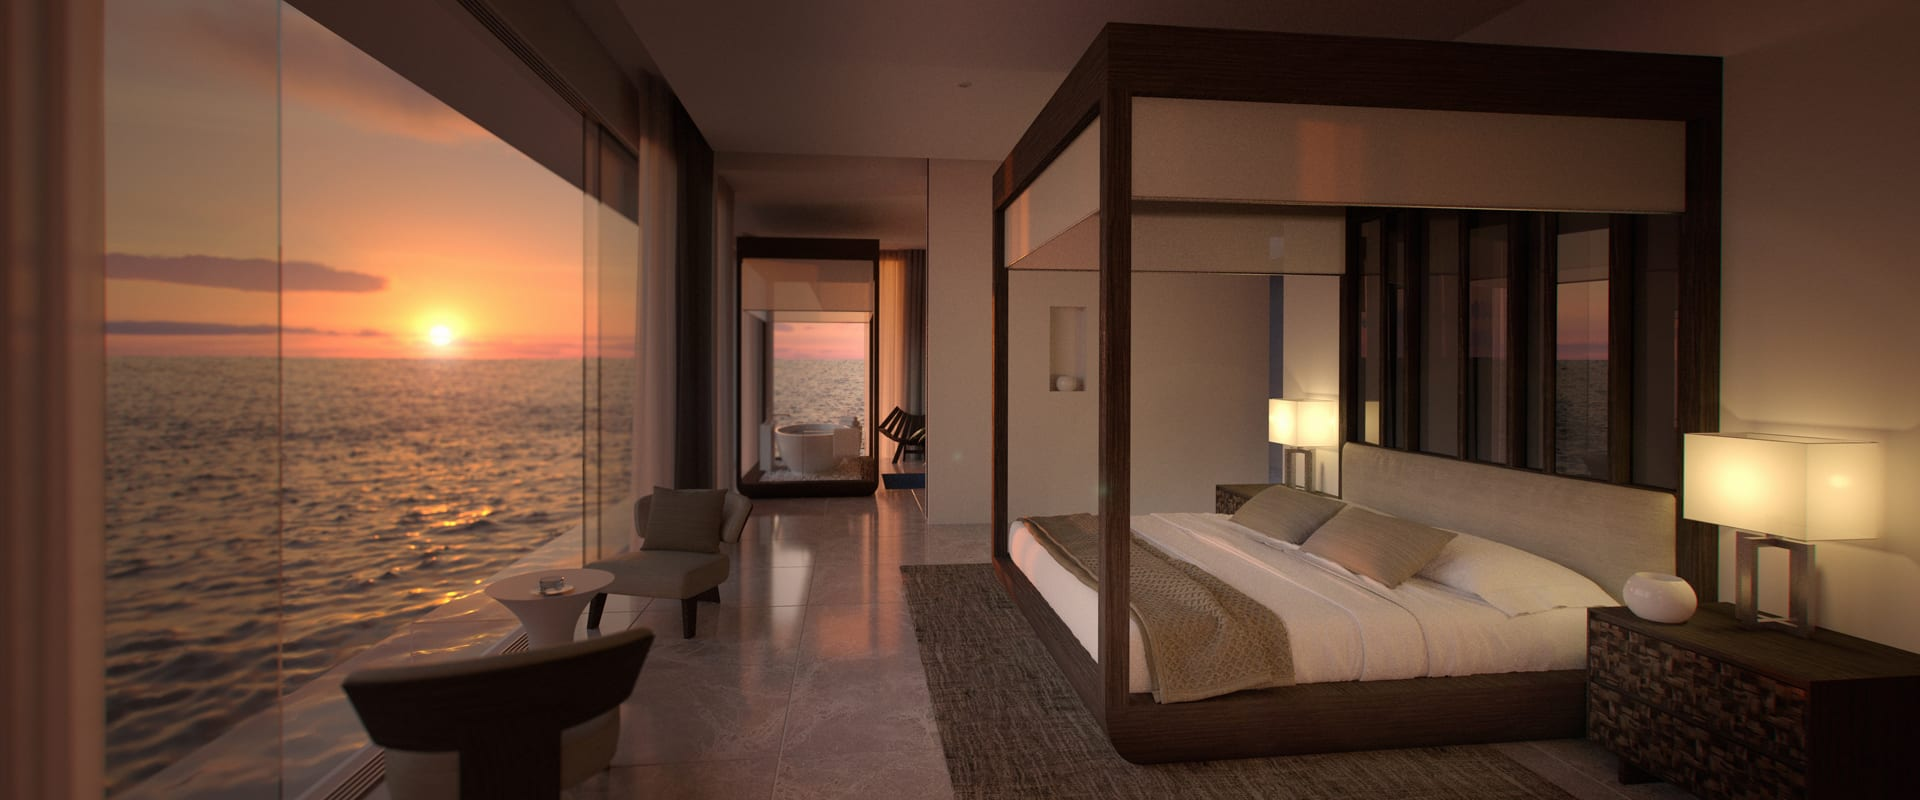 The master bedroom on the upper deck offers sweeping views of the ocean